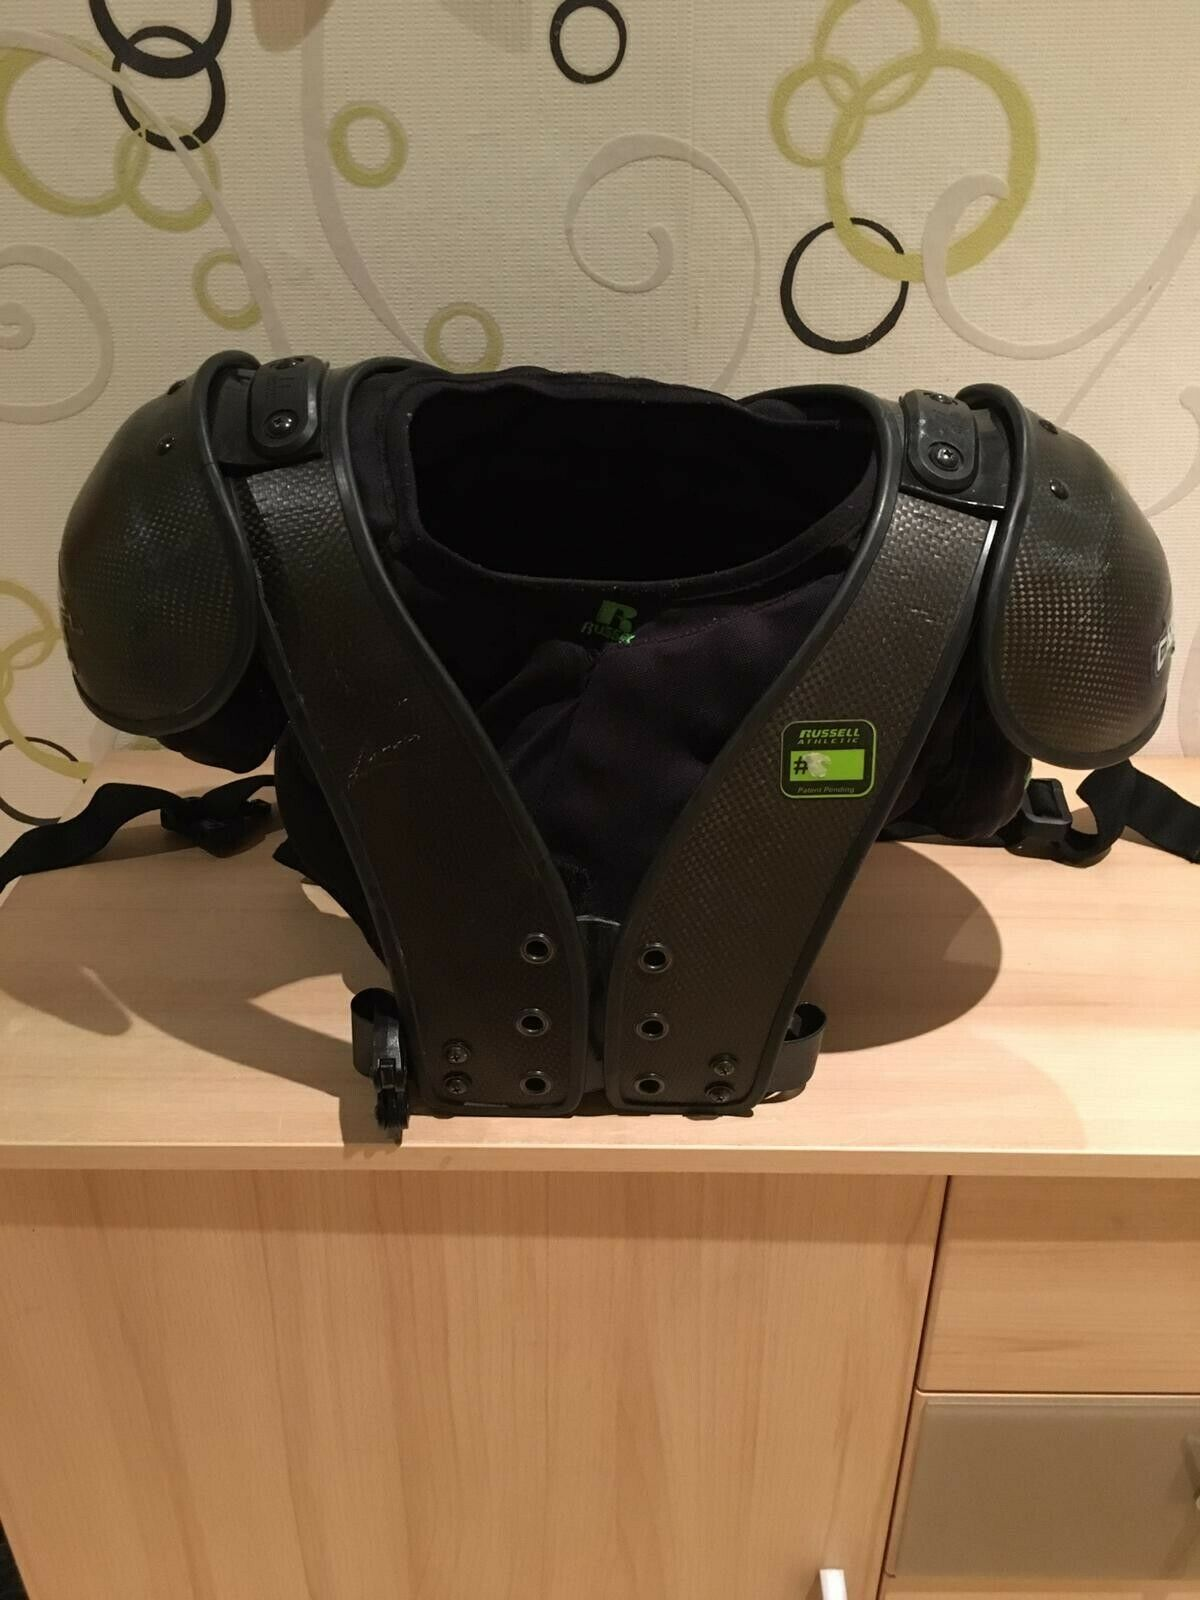 Carbontek Shoulder Pad powered by Russel (American Football)